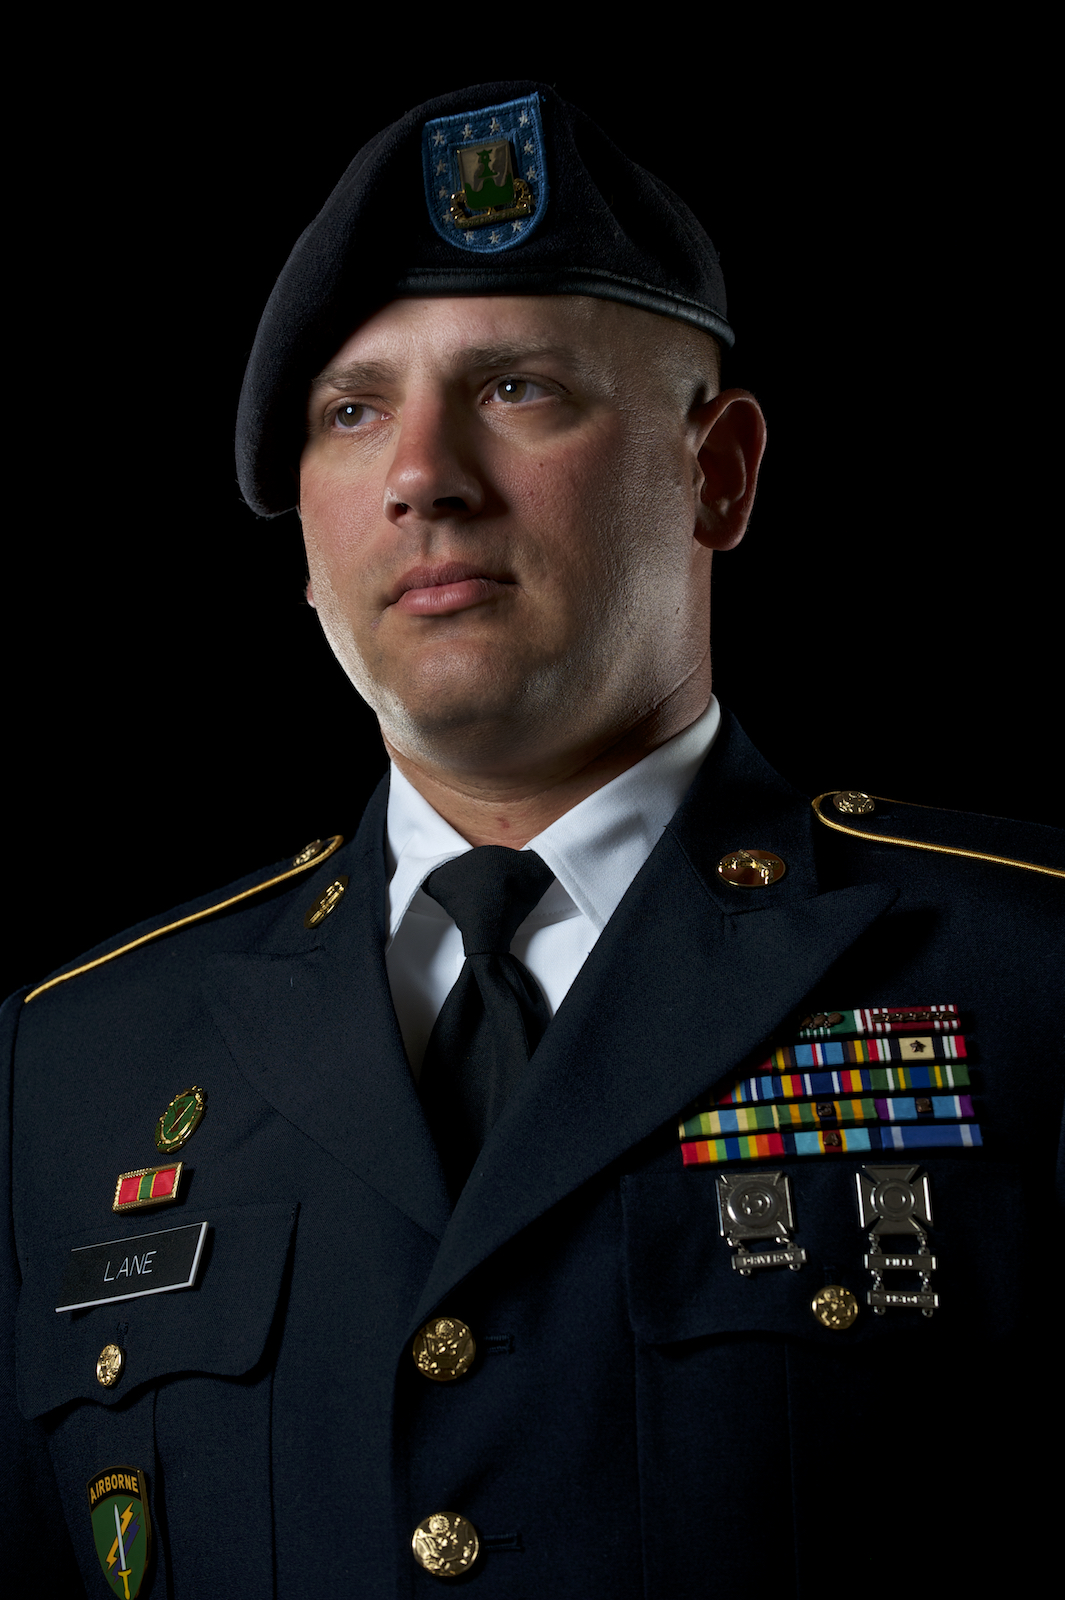 A studio portrait headshot of a soldier in the United States military.  Image by New Orleans based portrait photographer, Marc Pagani